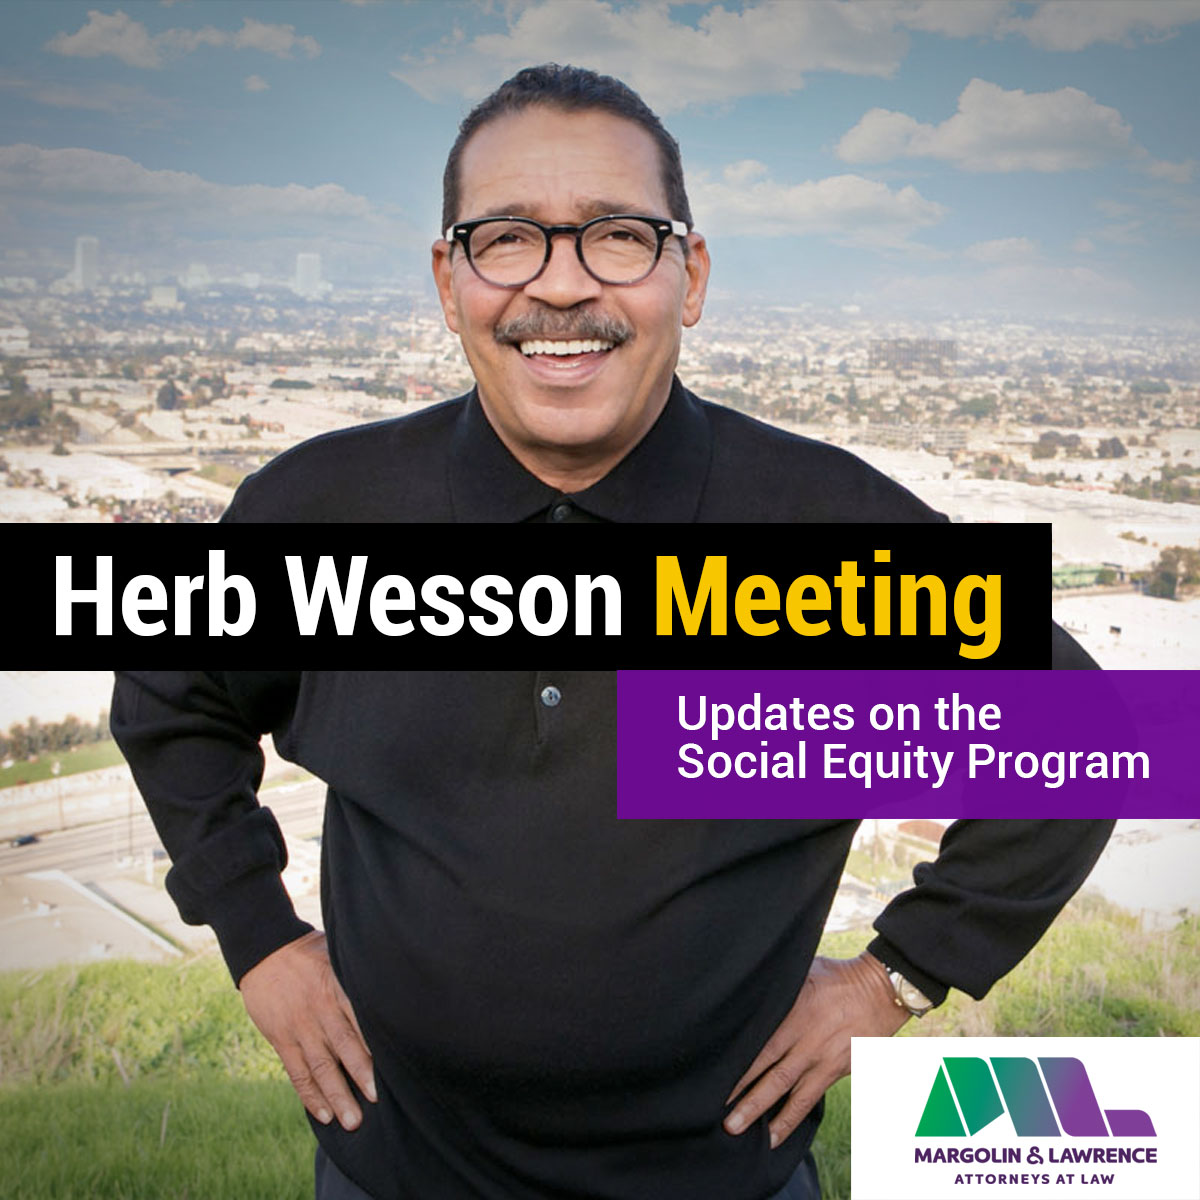 Herb Wesson Meeting - Updates on the Social Equity Program